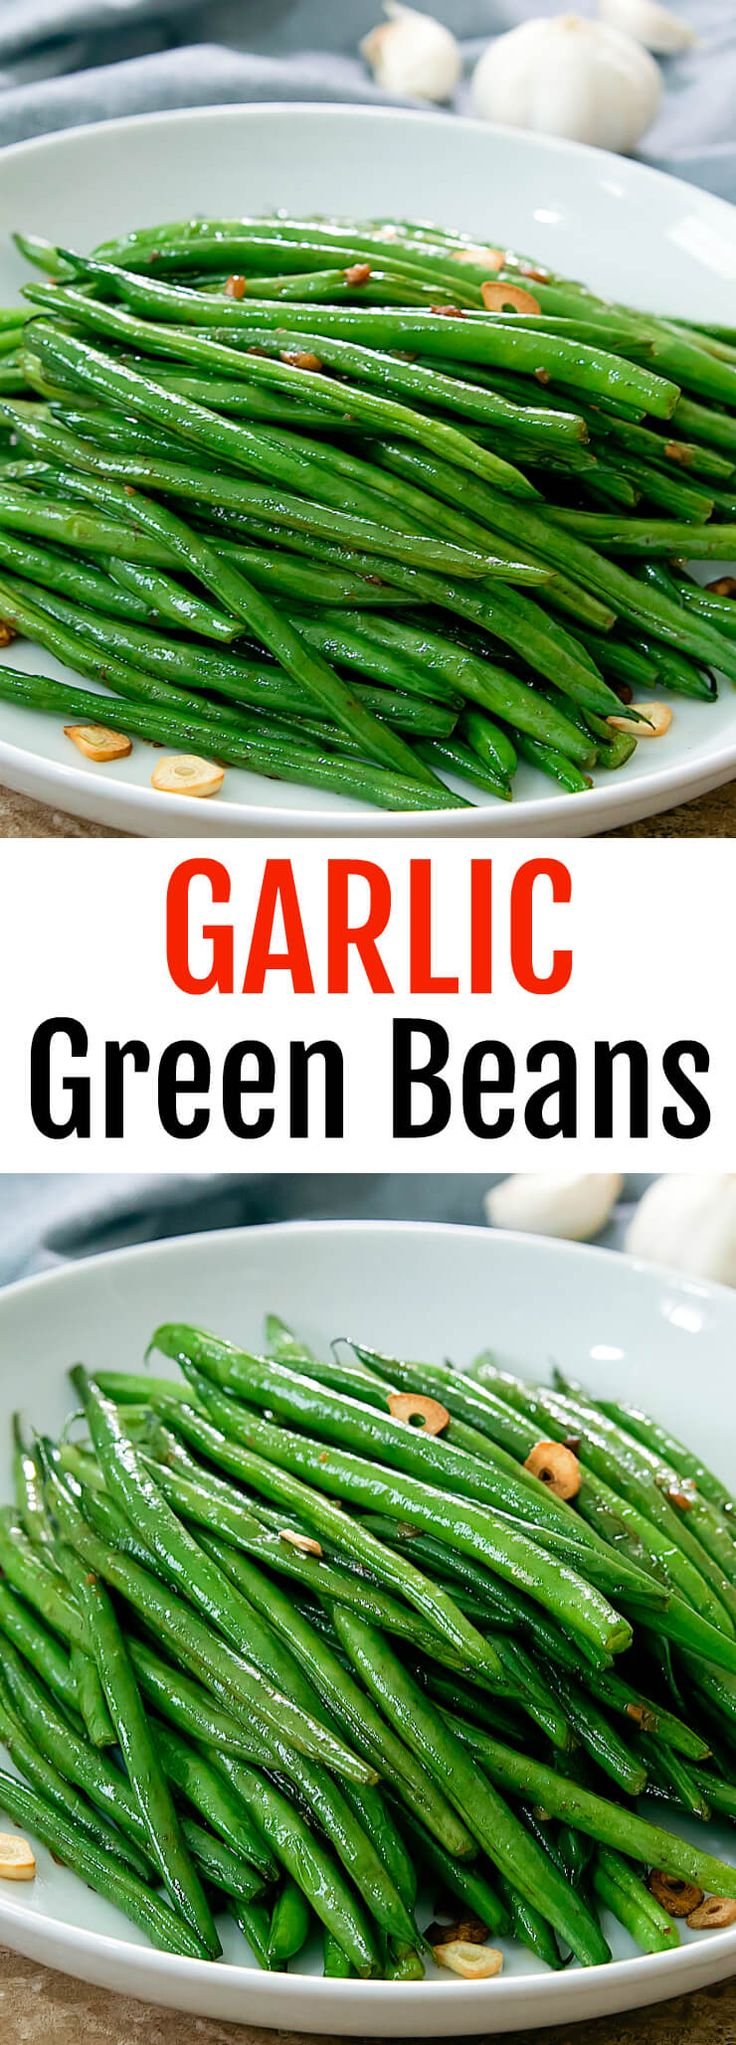 Garlic Green Beans. A quick and easy way to serve green beans, ready in less than 15 minutes.